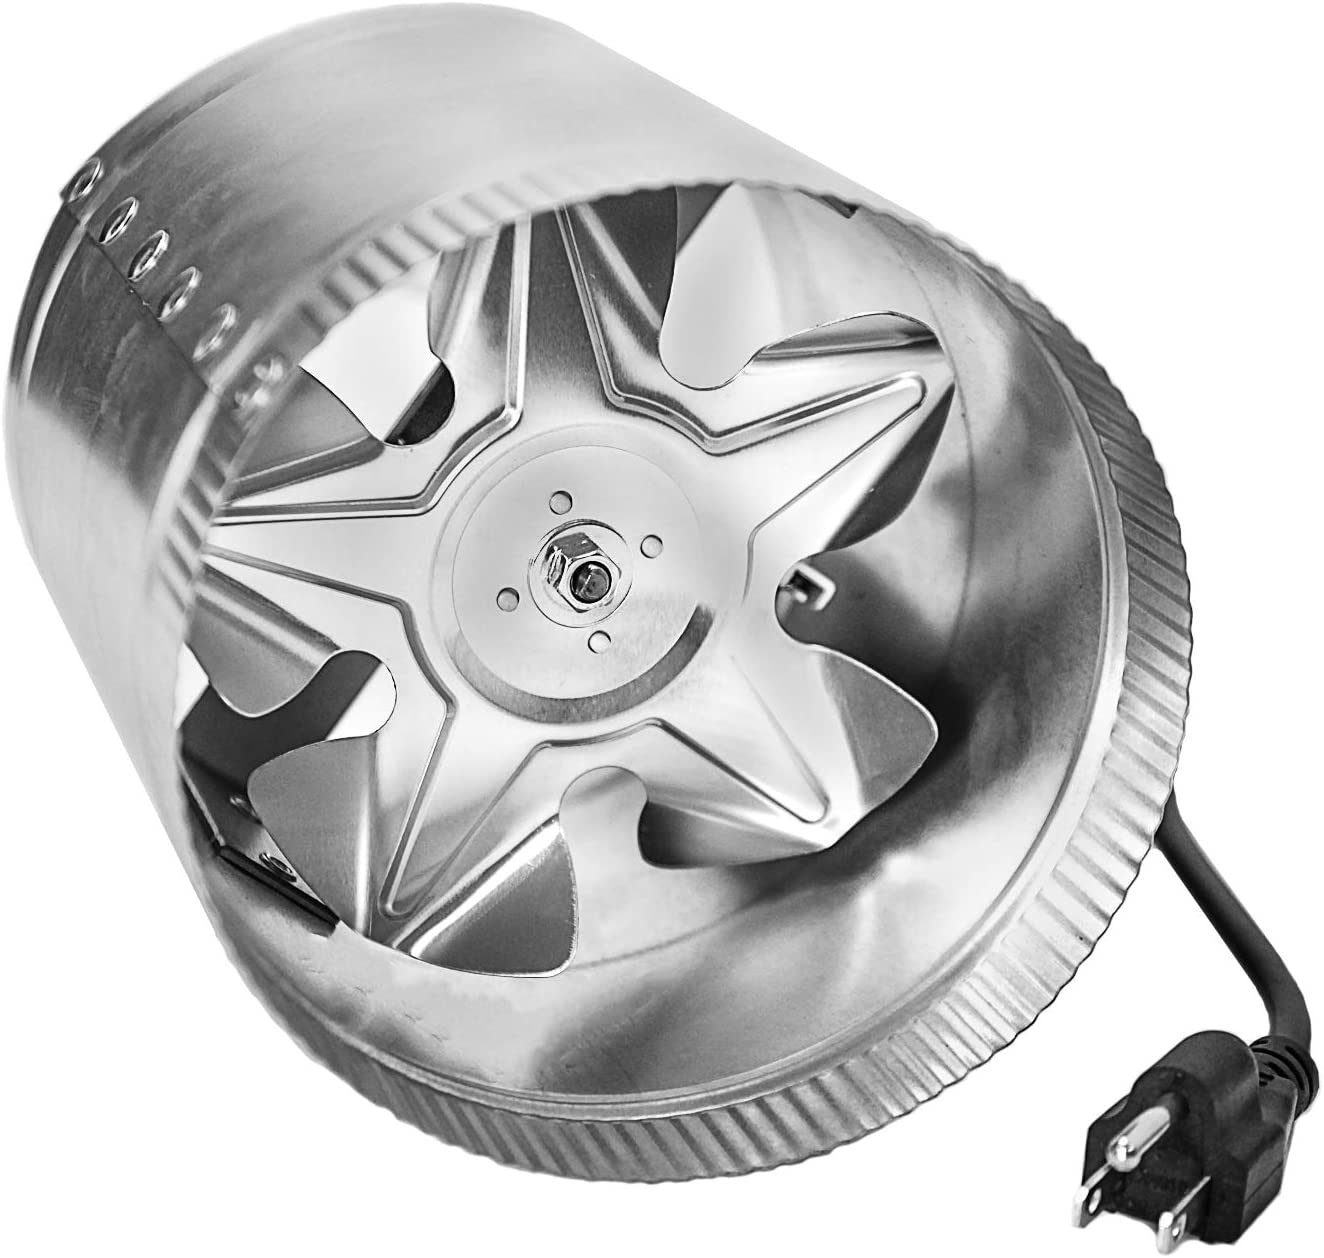 "iPower GLFANXBOOSTER6-a 6 Inch 240 CFM Inline Duct Vent Blower Booster Fan for HVAC Exhaust and Intake 5.5' Grounded Power Cord, Low Noise, 6"", Silver"